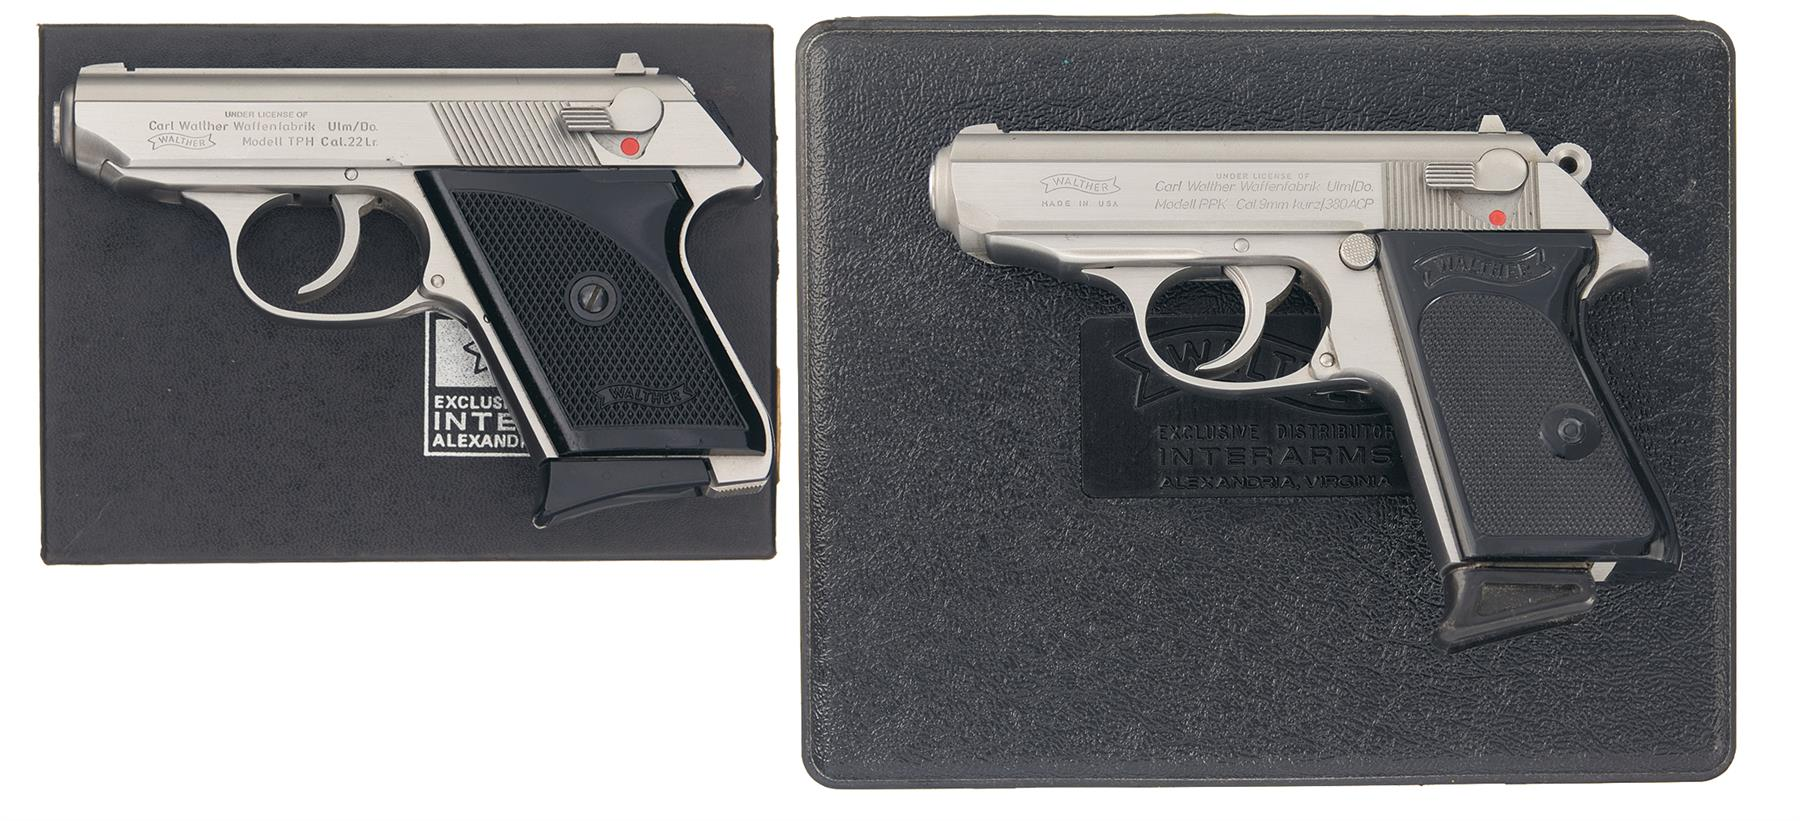 interarms 38 special serial numbers